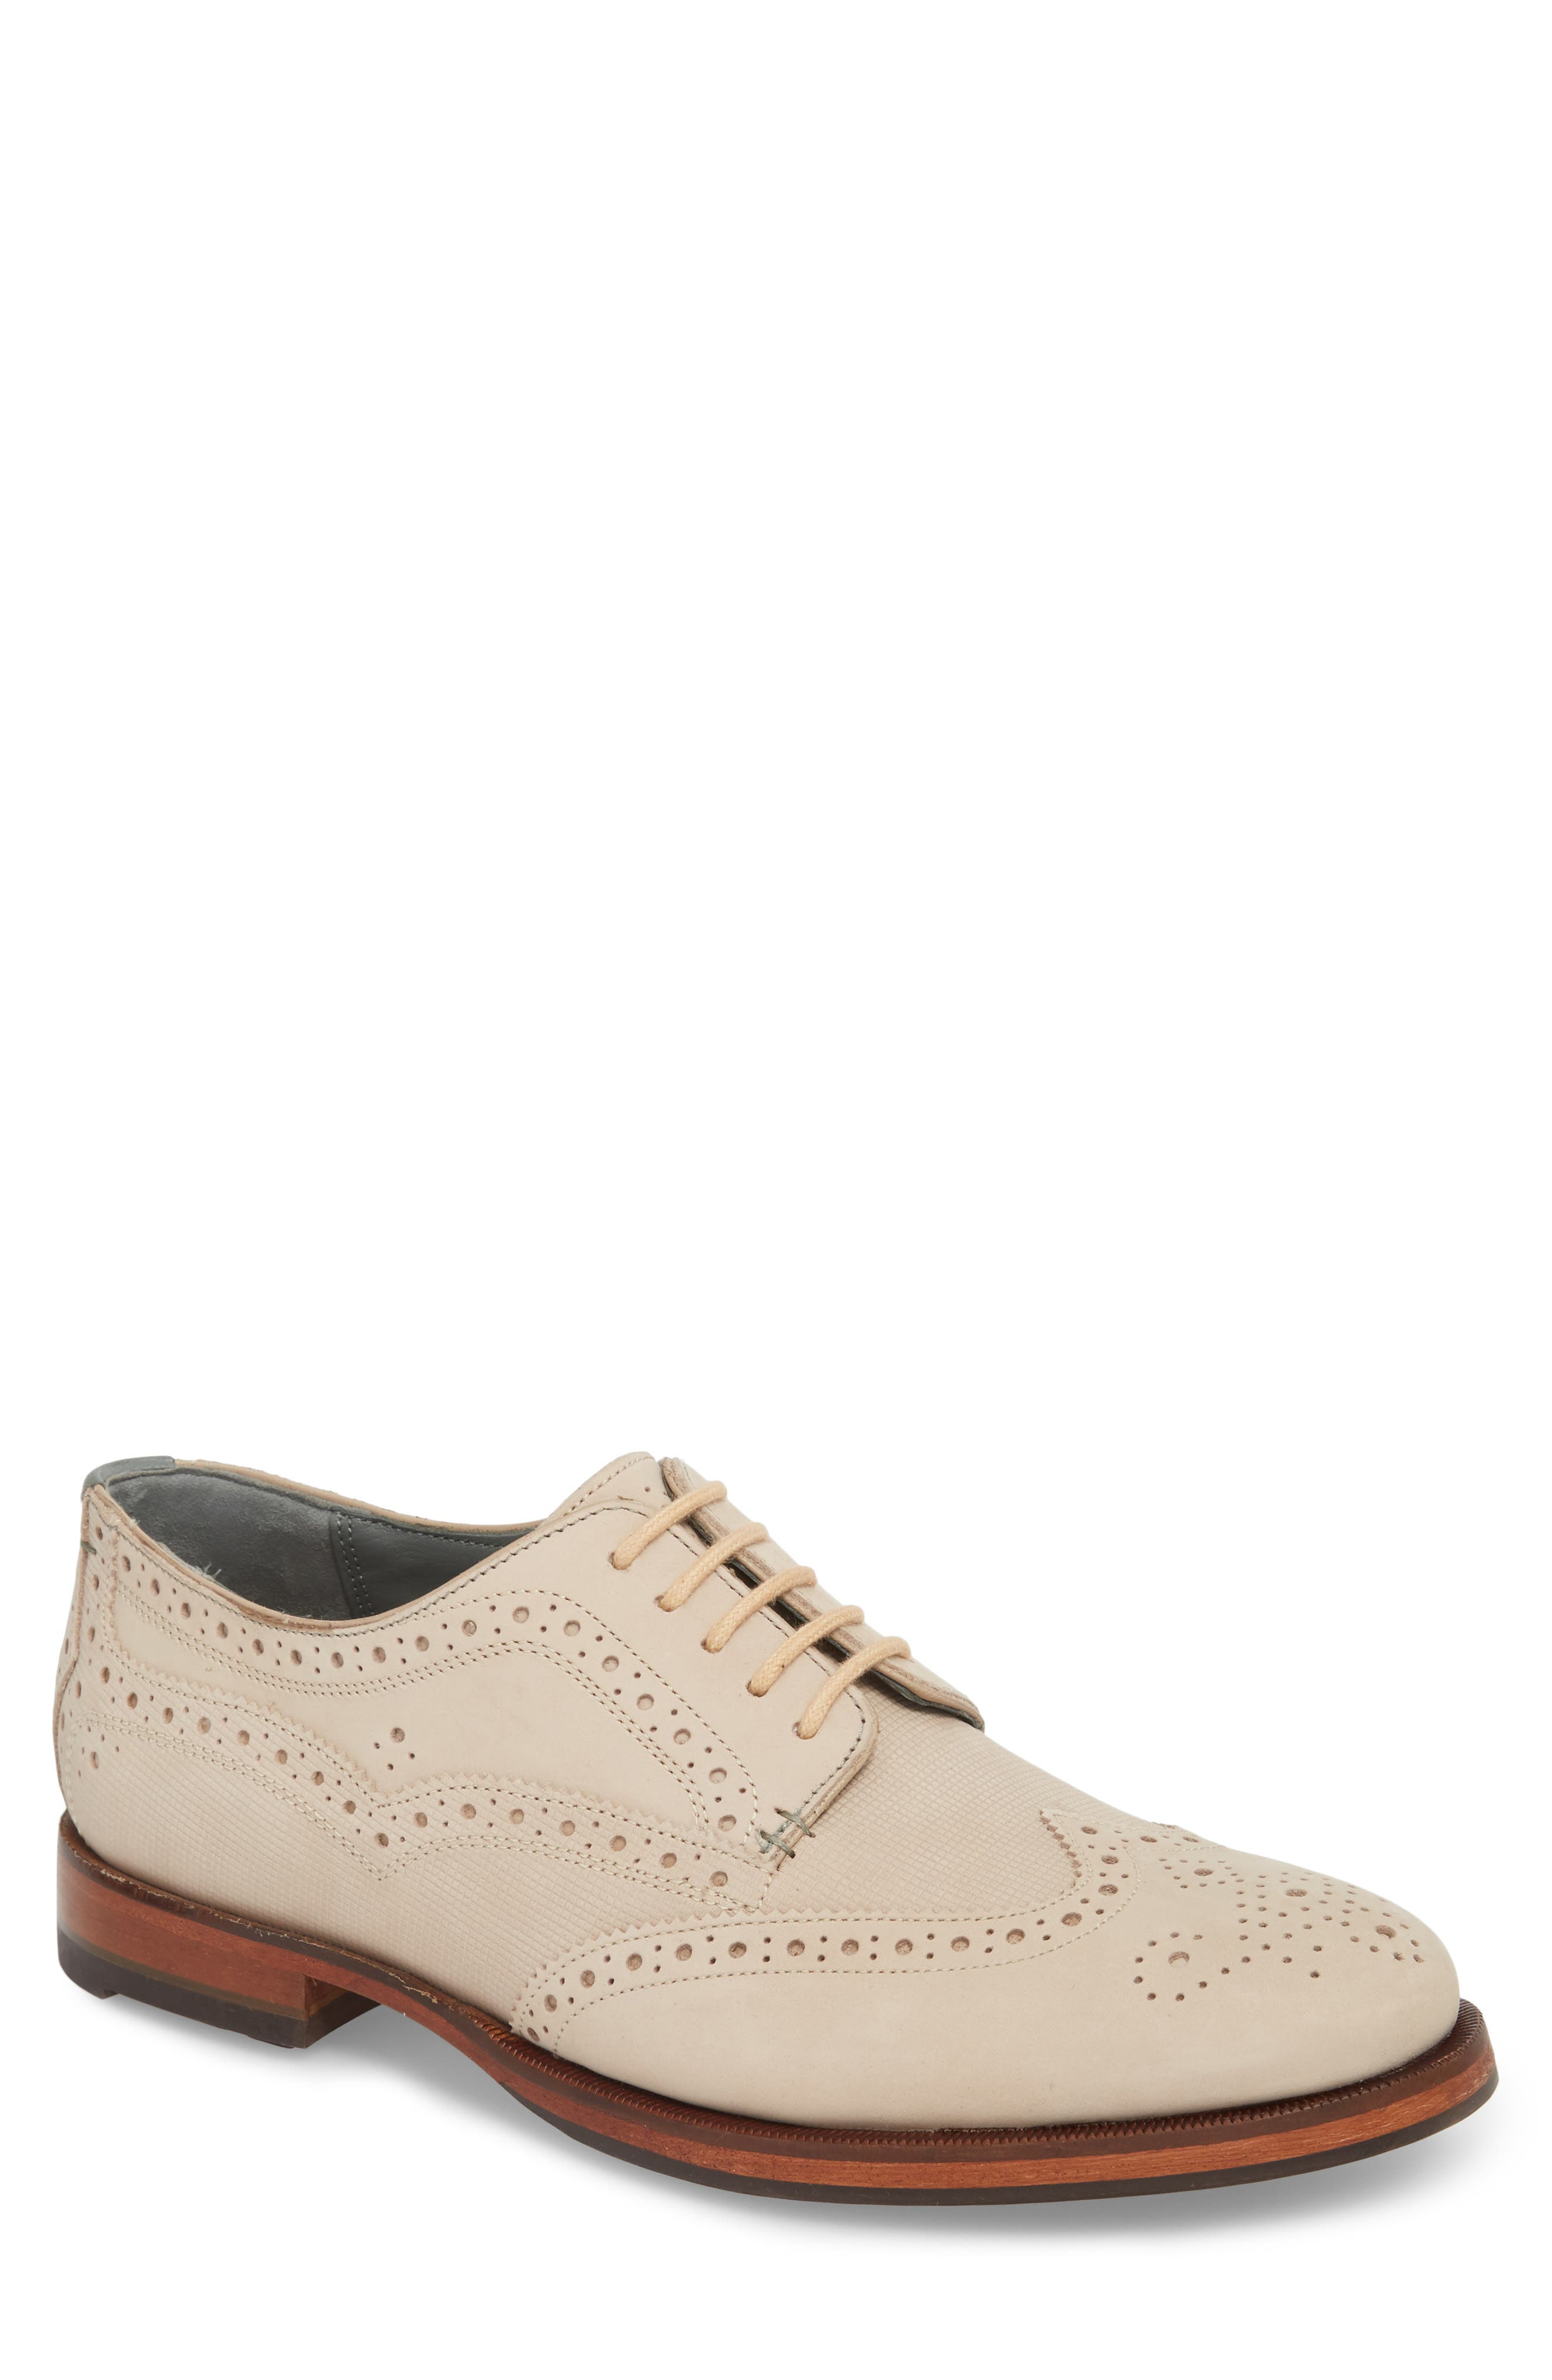 Senapen Wingtip Derby,                             Main thumbnail 1, color,                             LIGHT TAN SUEDE